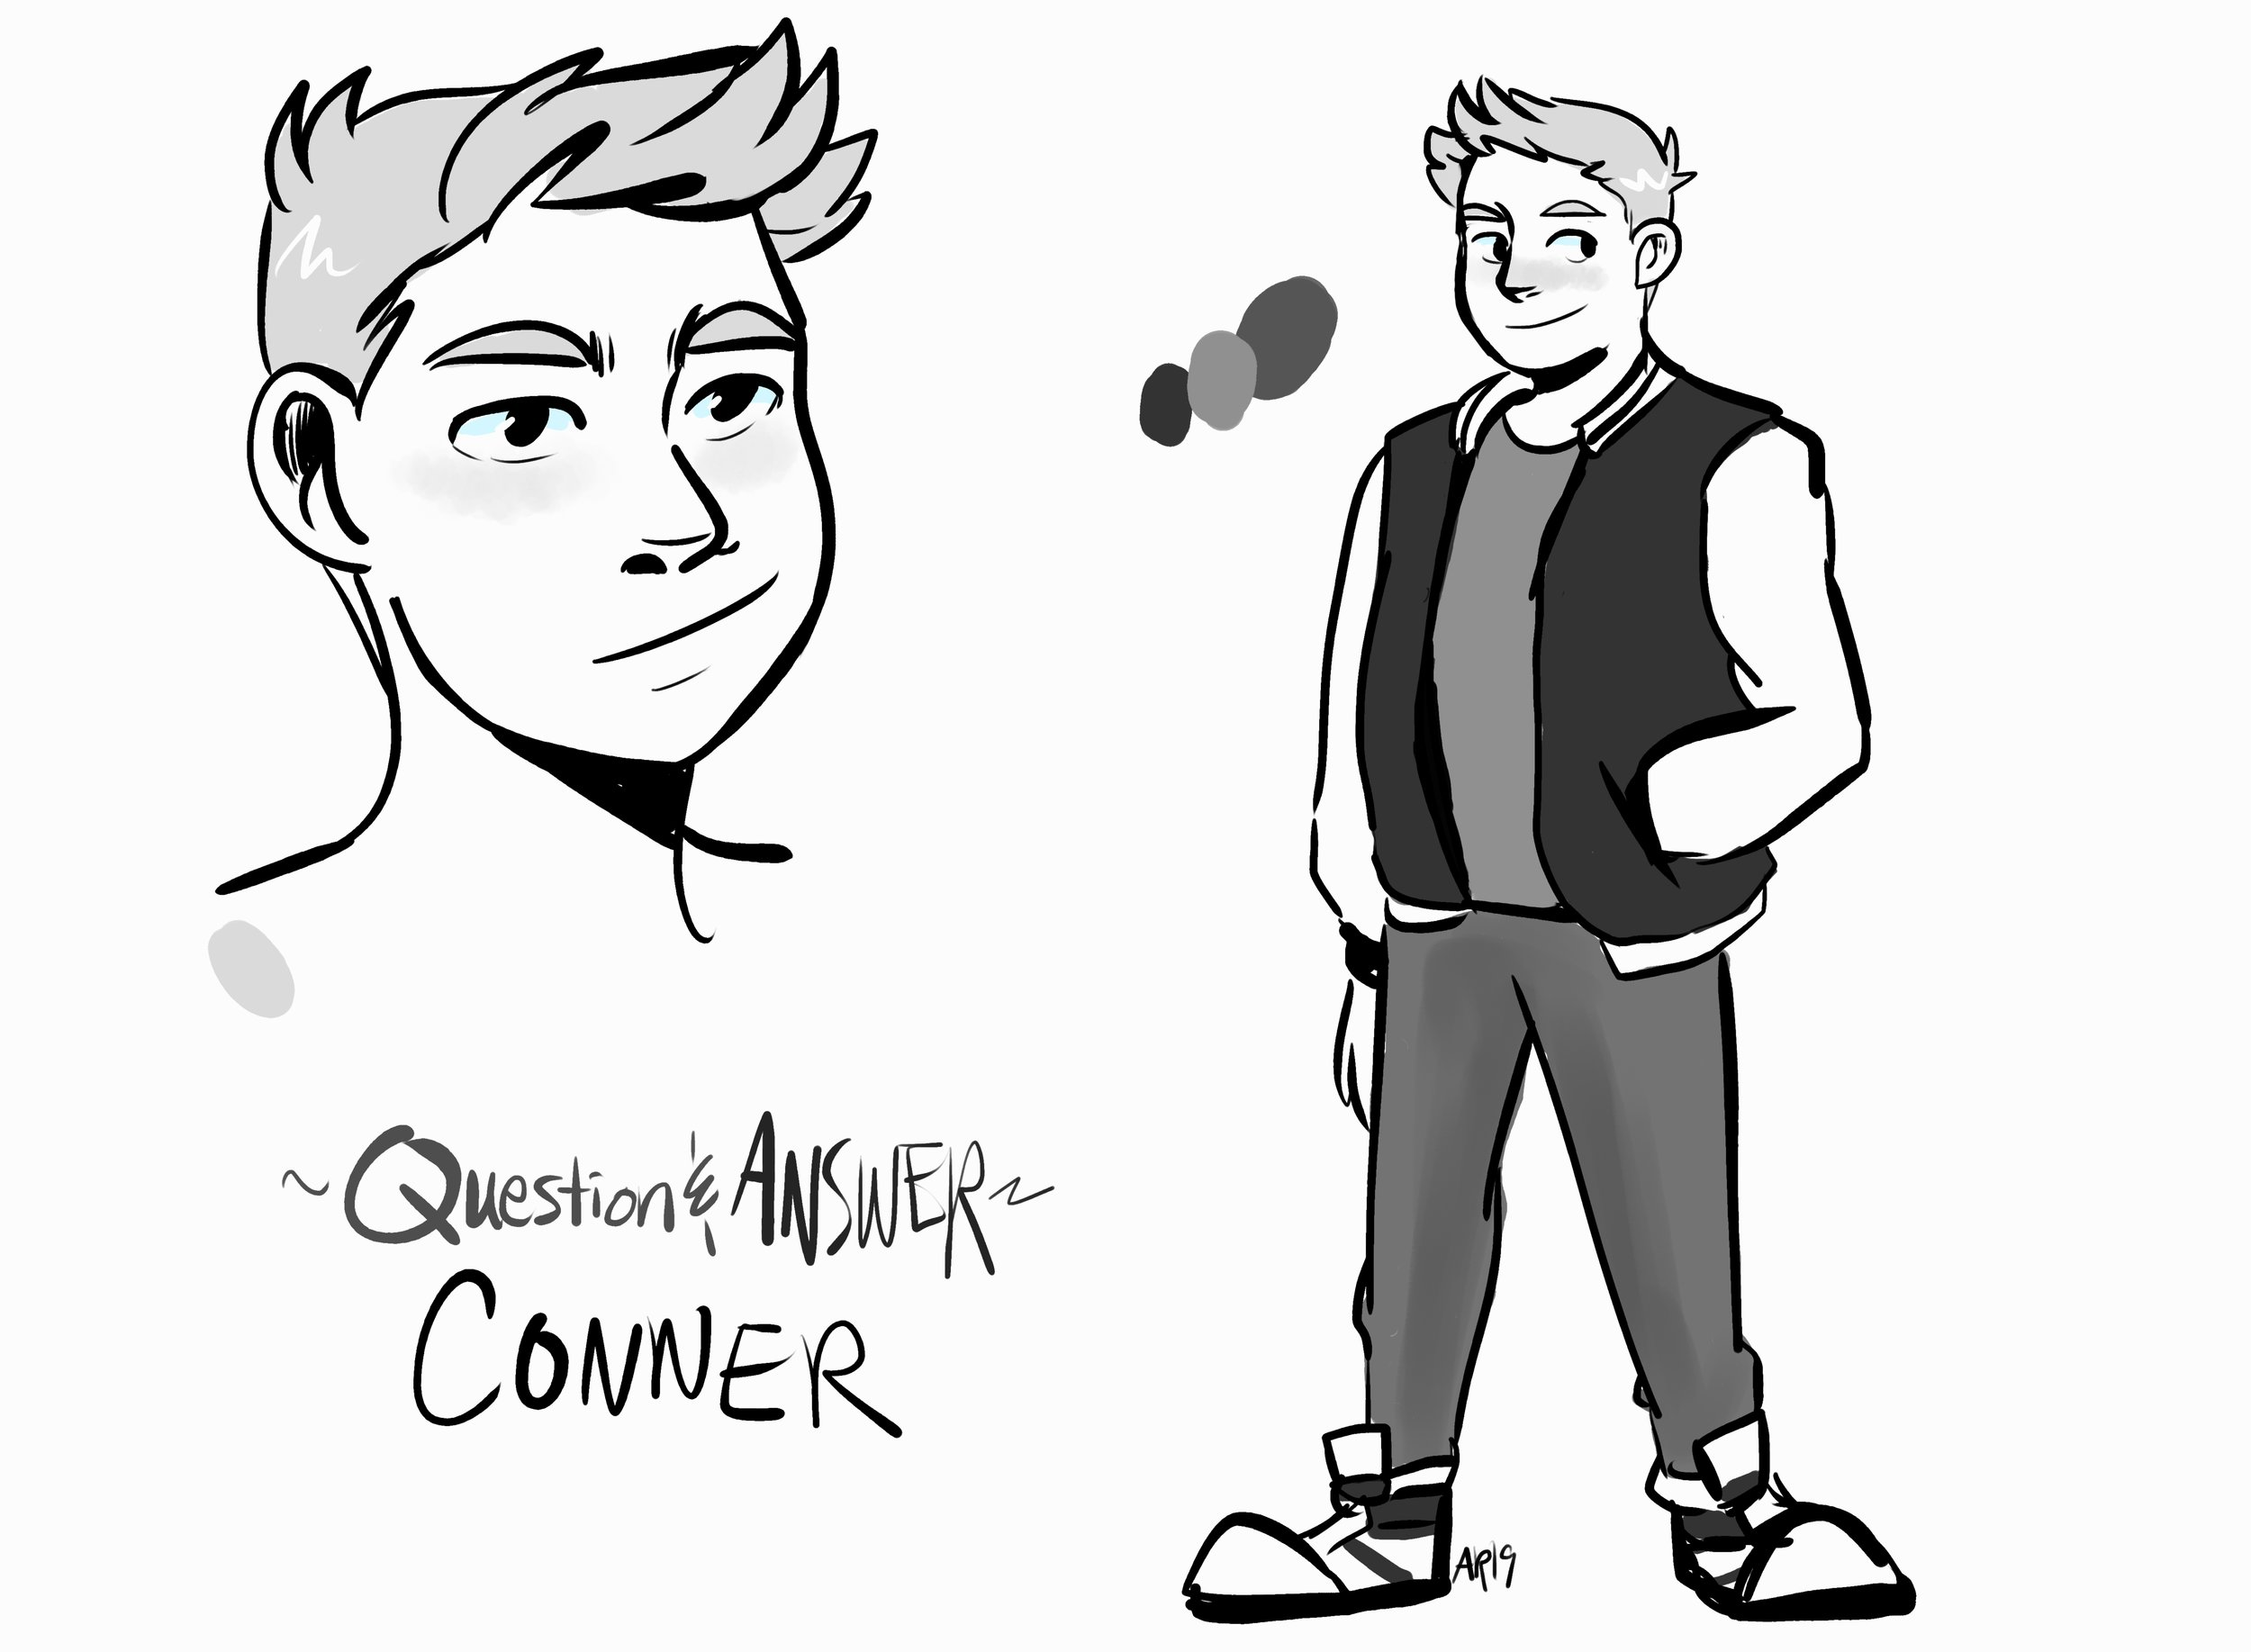 Question And Answer: Conner